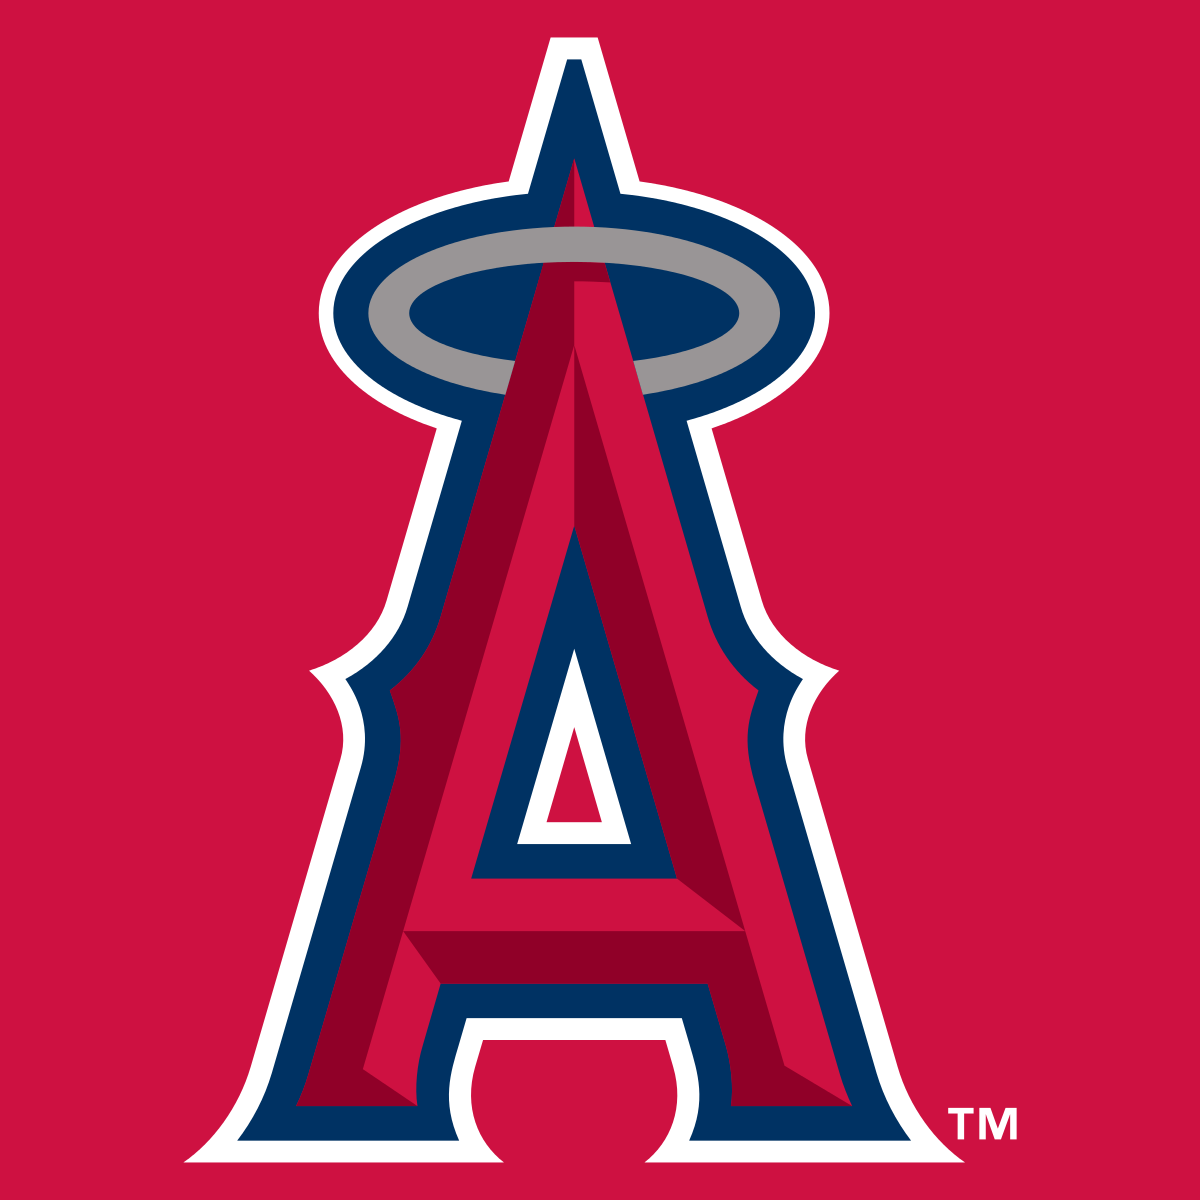 File:Los Angeles Angels of Anaheim Insignia.svg.